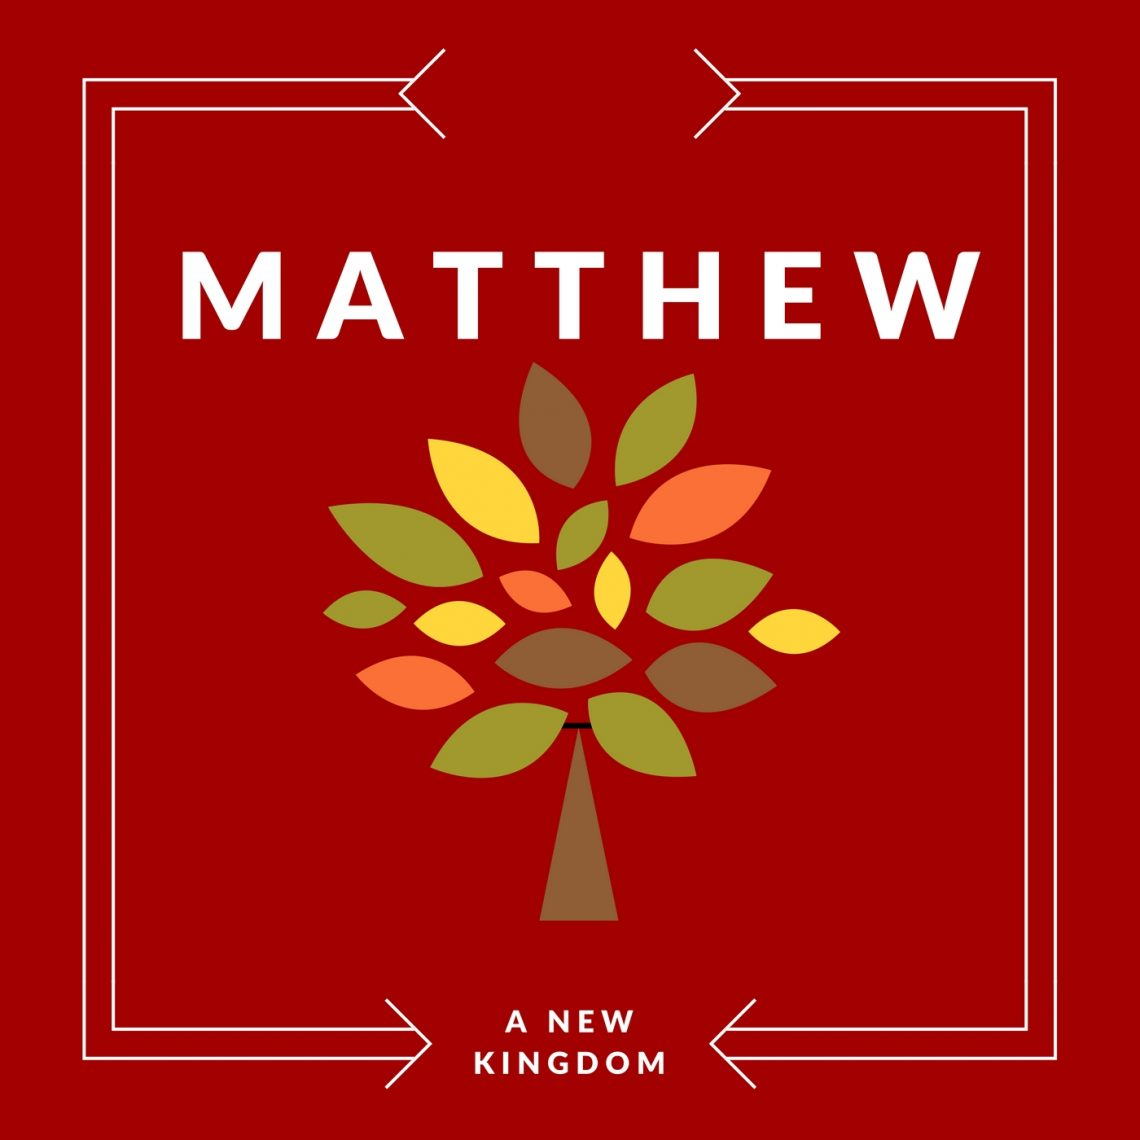 Matthew 7 | The Golden Rule